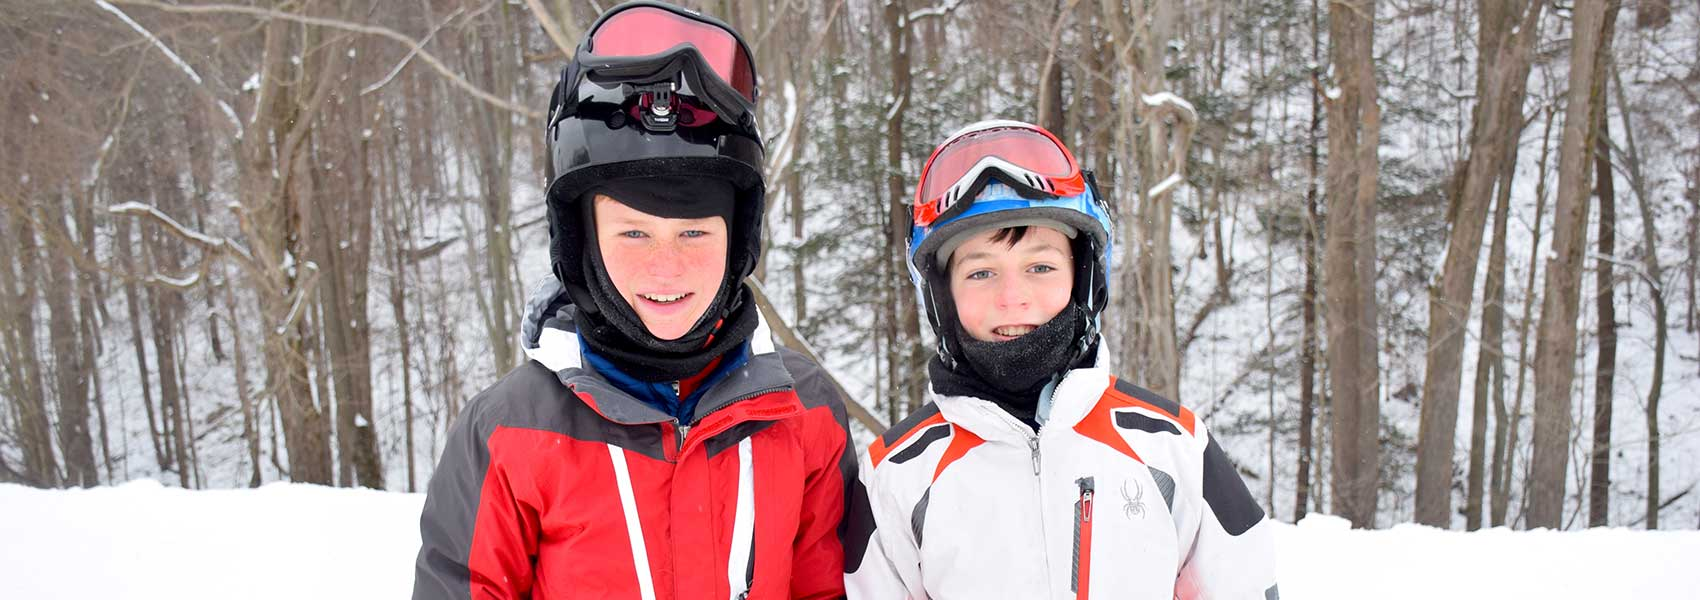 youth-skiers-smiling